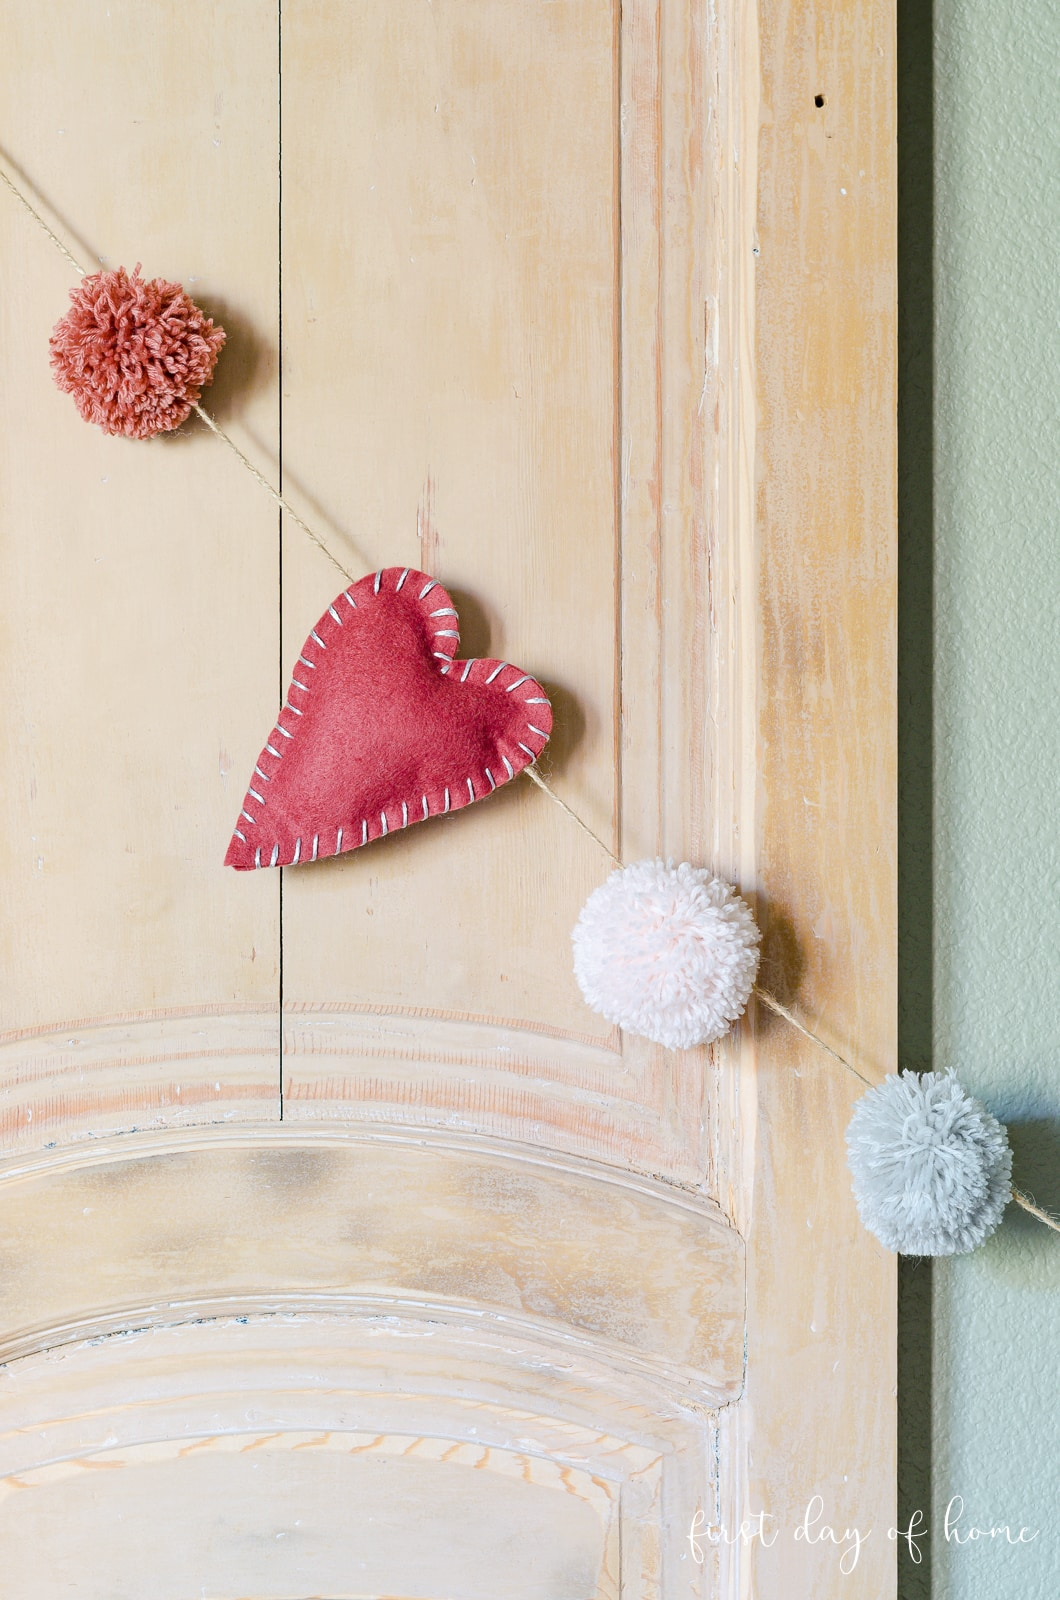 Valentines Day garland with pink ombre pom-poms and felt hearts